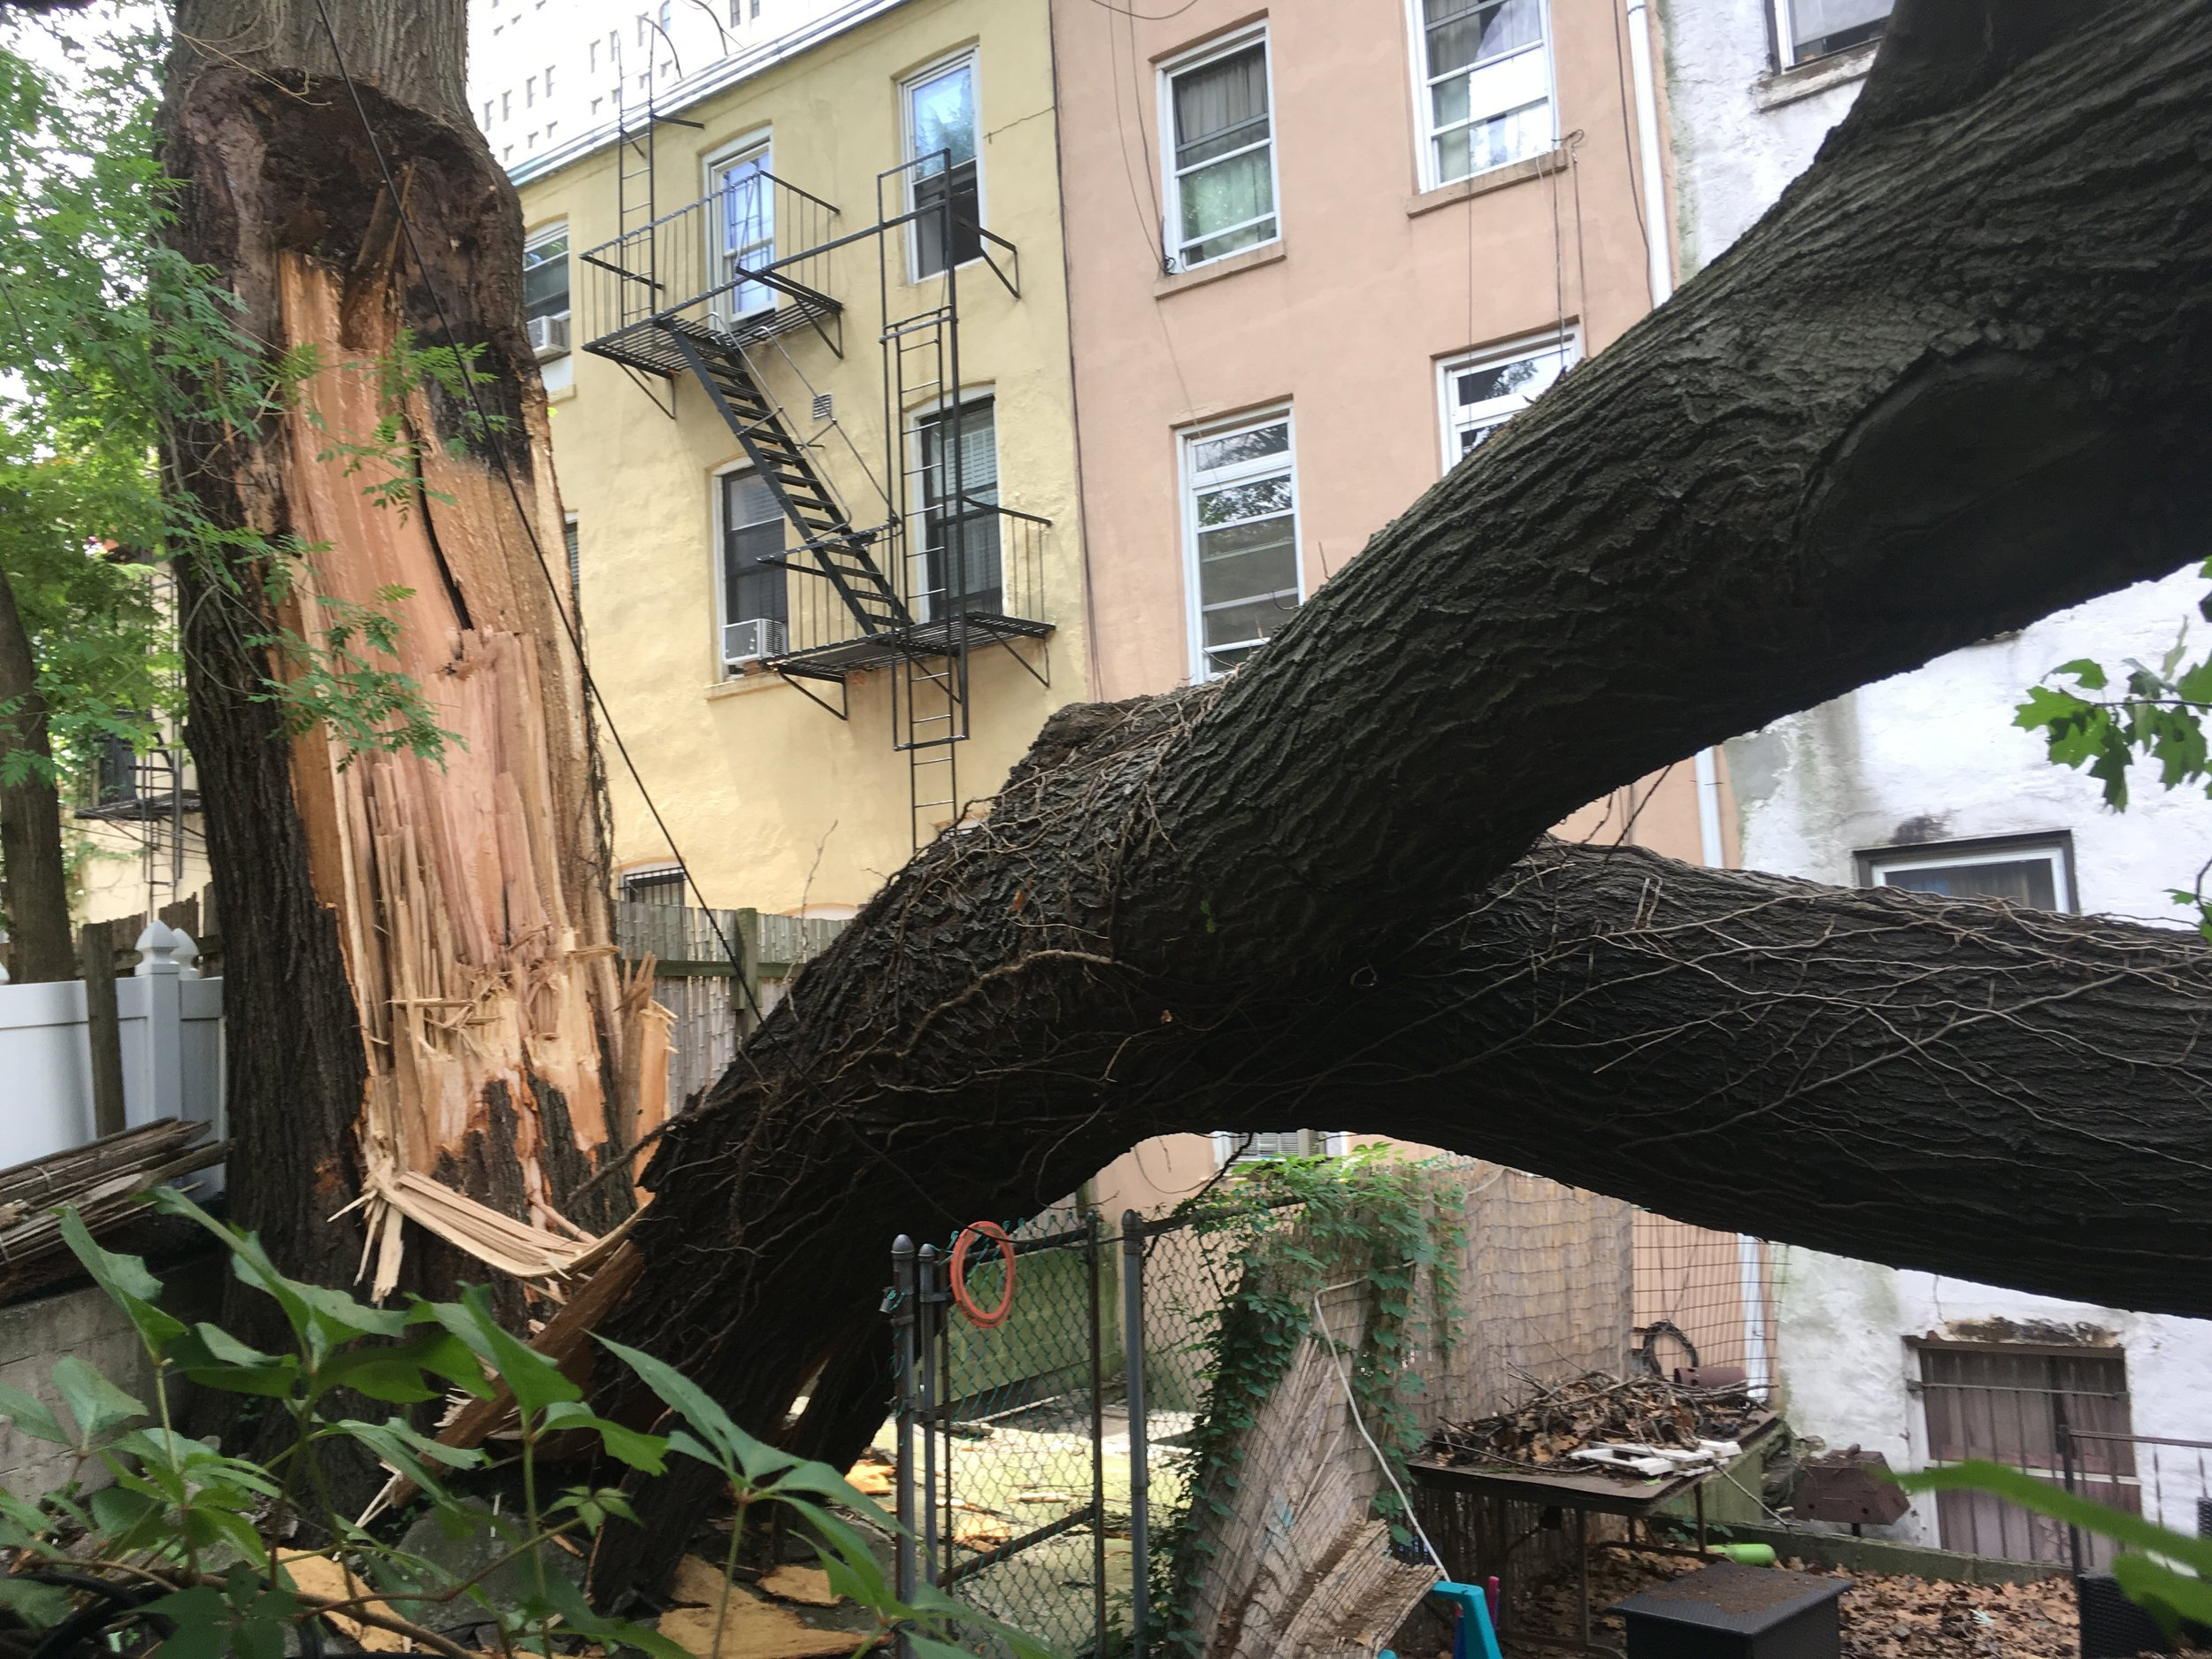 An adventure of an appraisal after a rainstorm, an oak tree with included bark, a weak fork. We didn't end up taking this job. We have big personalities here at Arborpolitan, but we're a small company